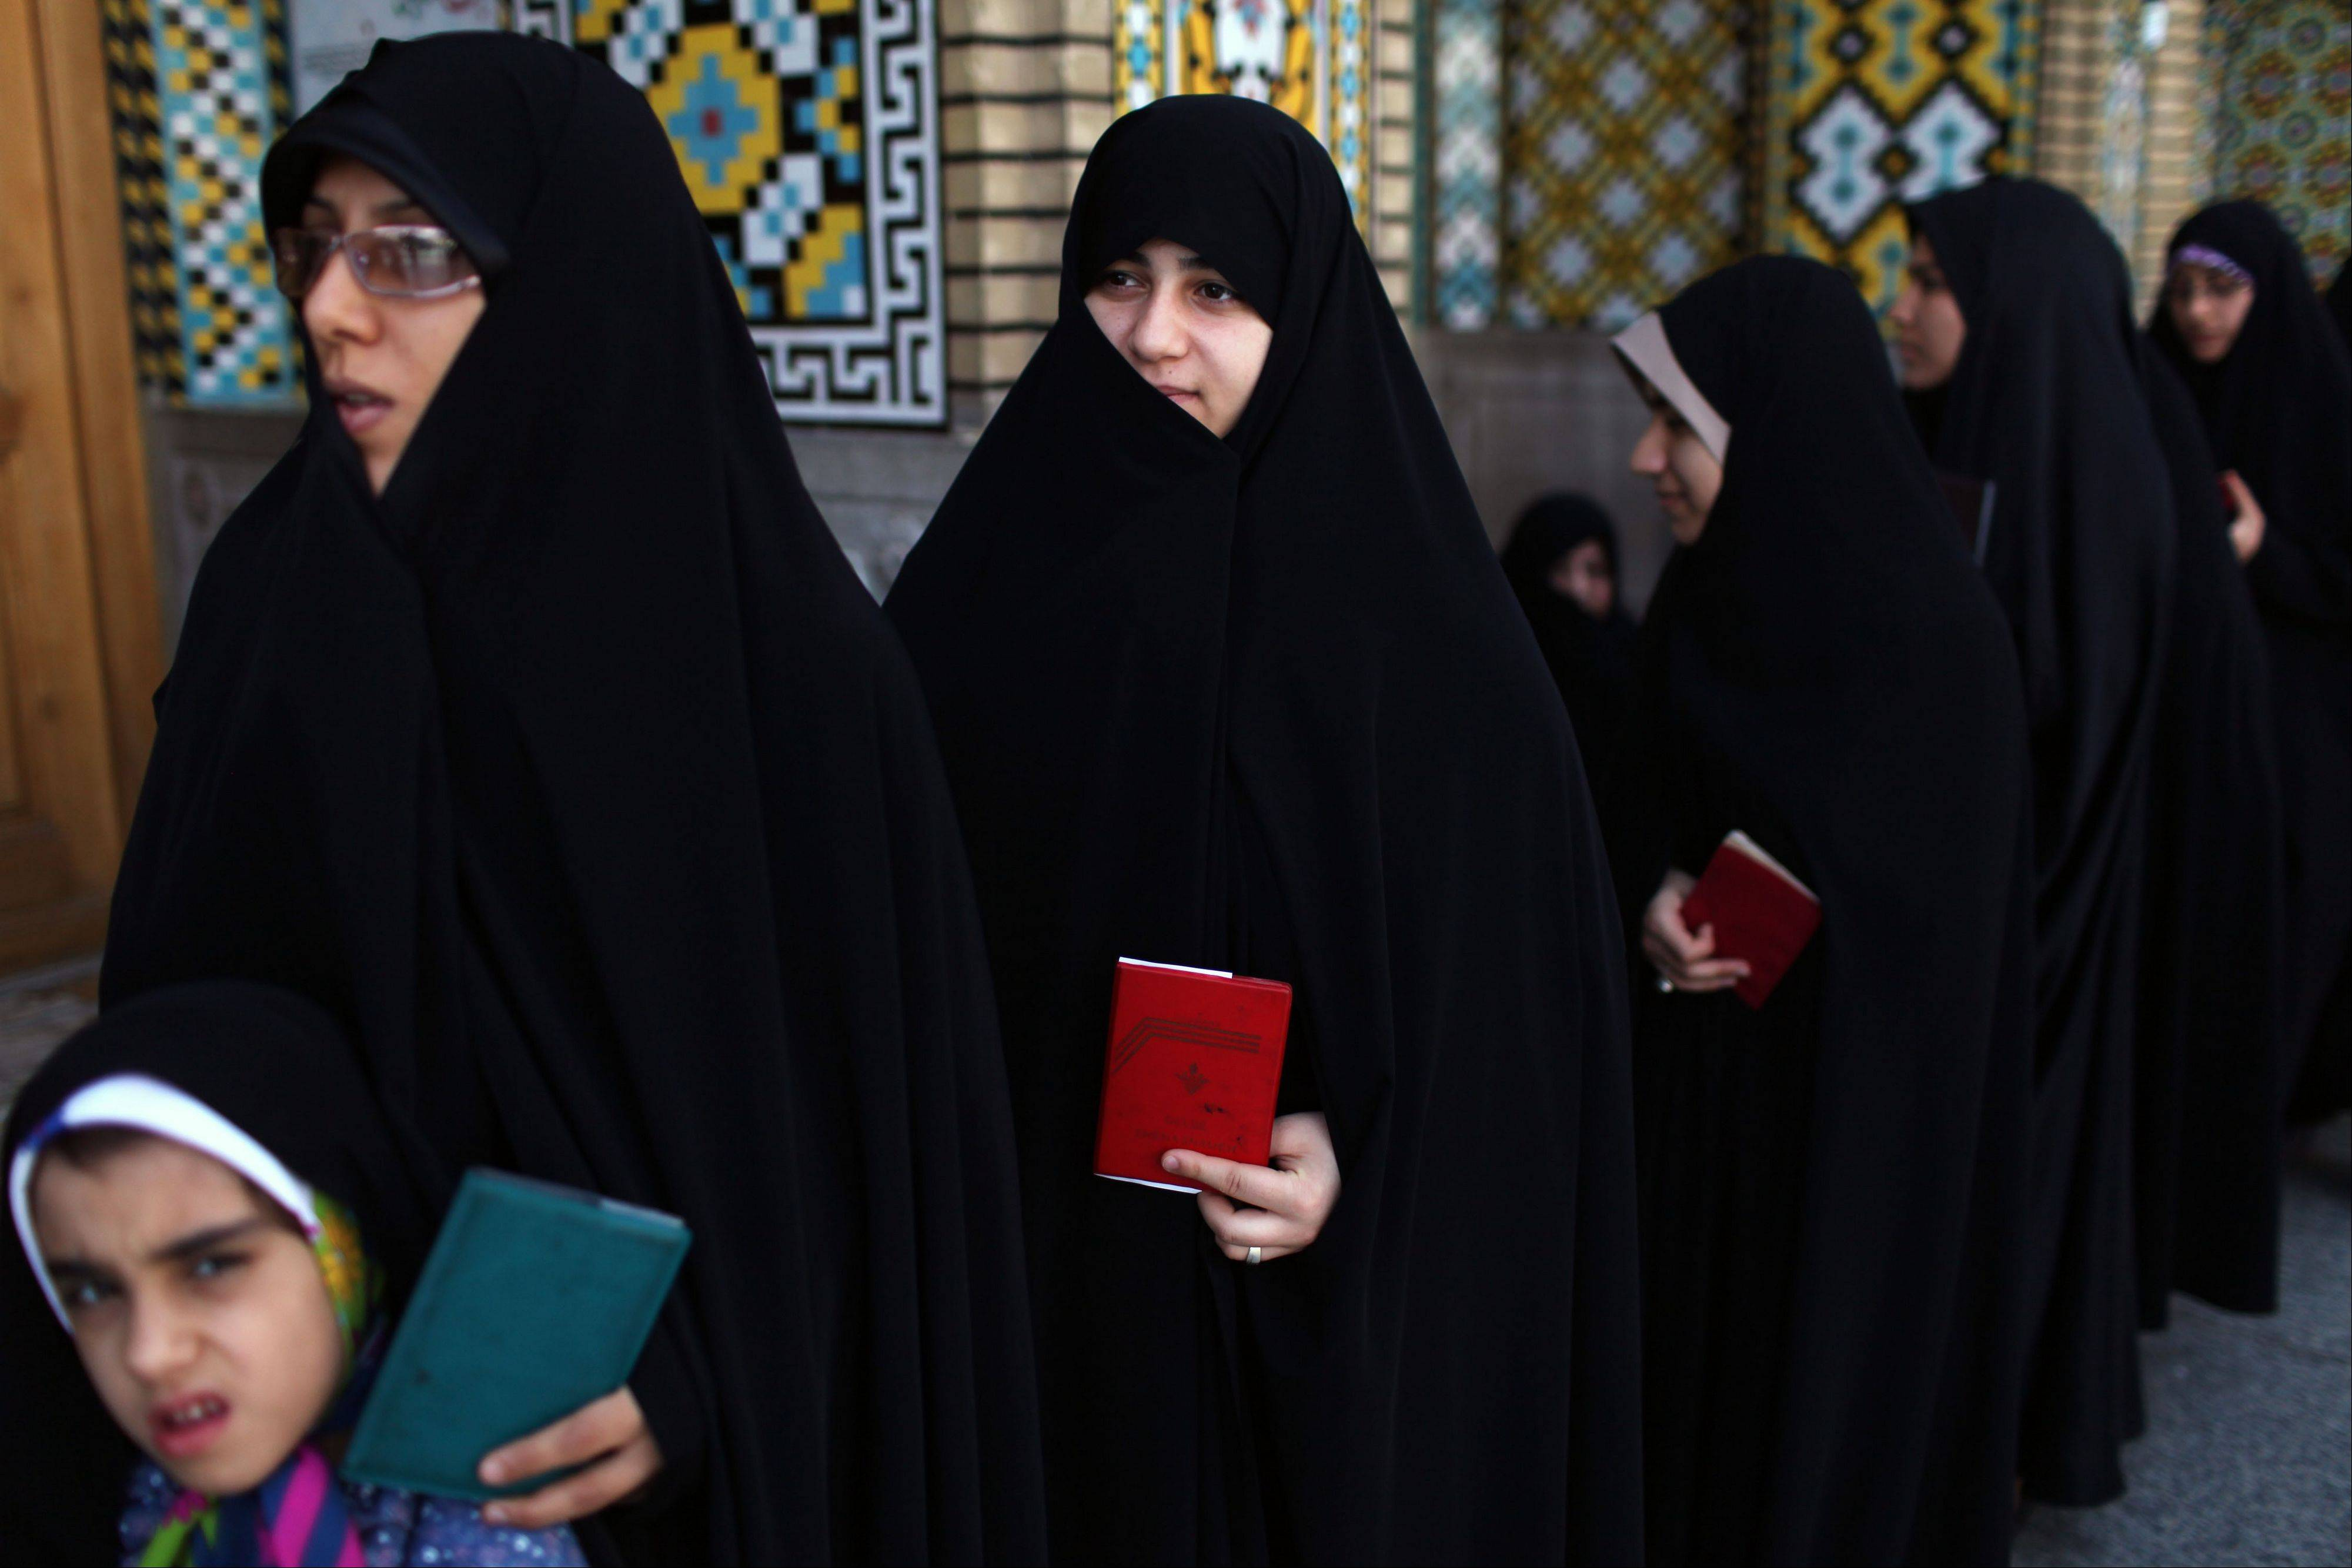 Iranian women wait in line at a polling station Friday to vote during presidential elections.